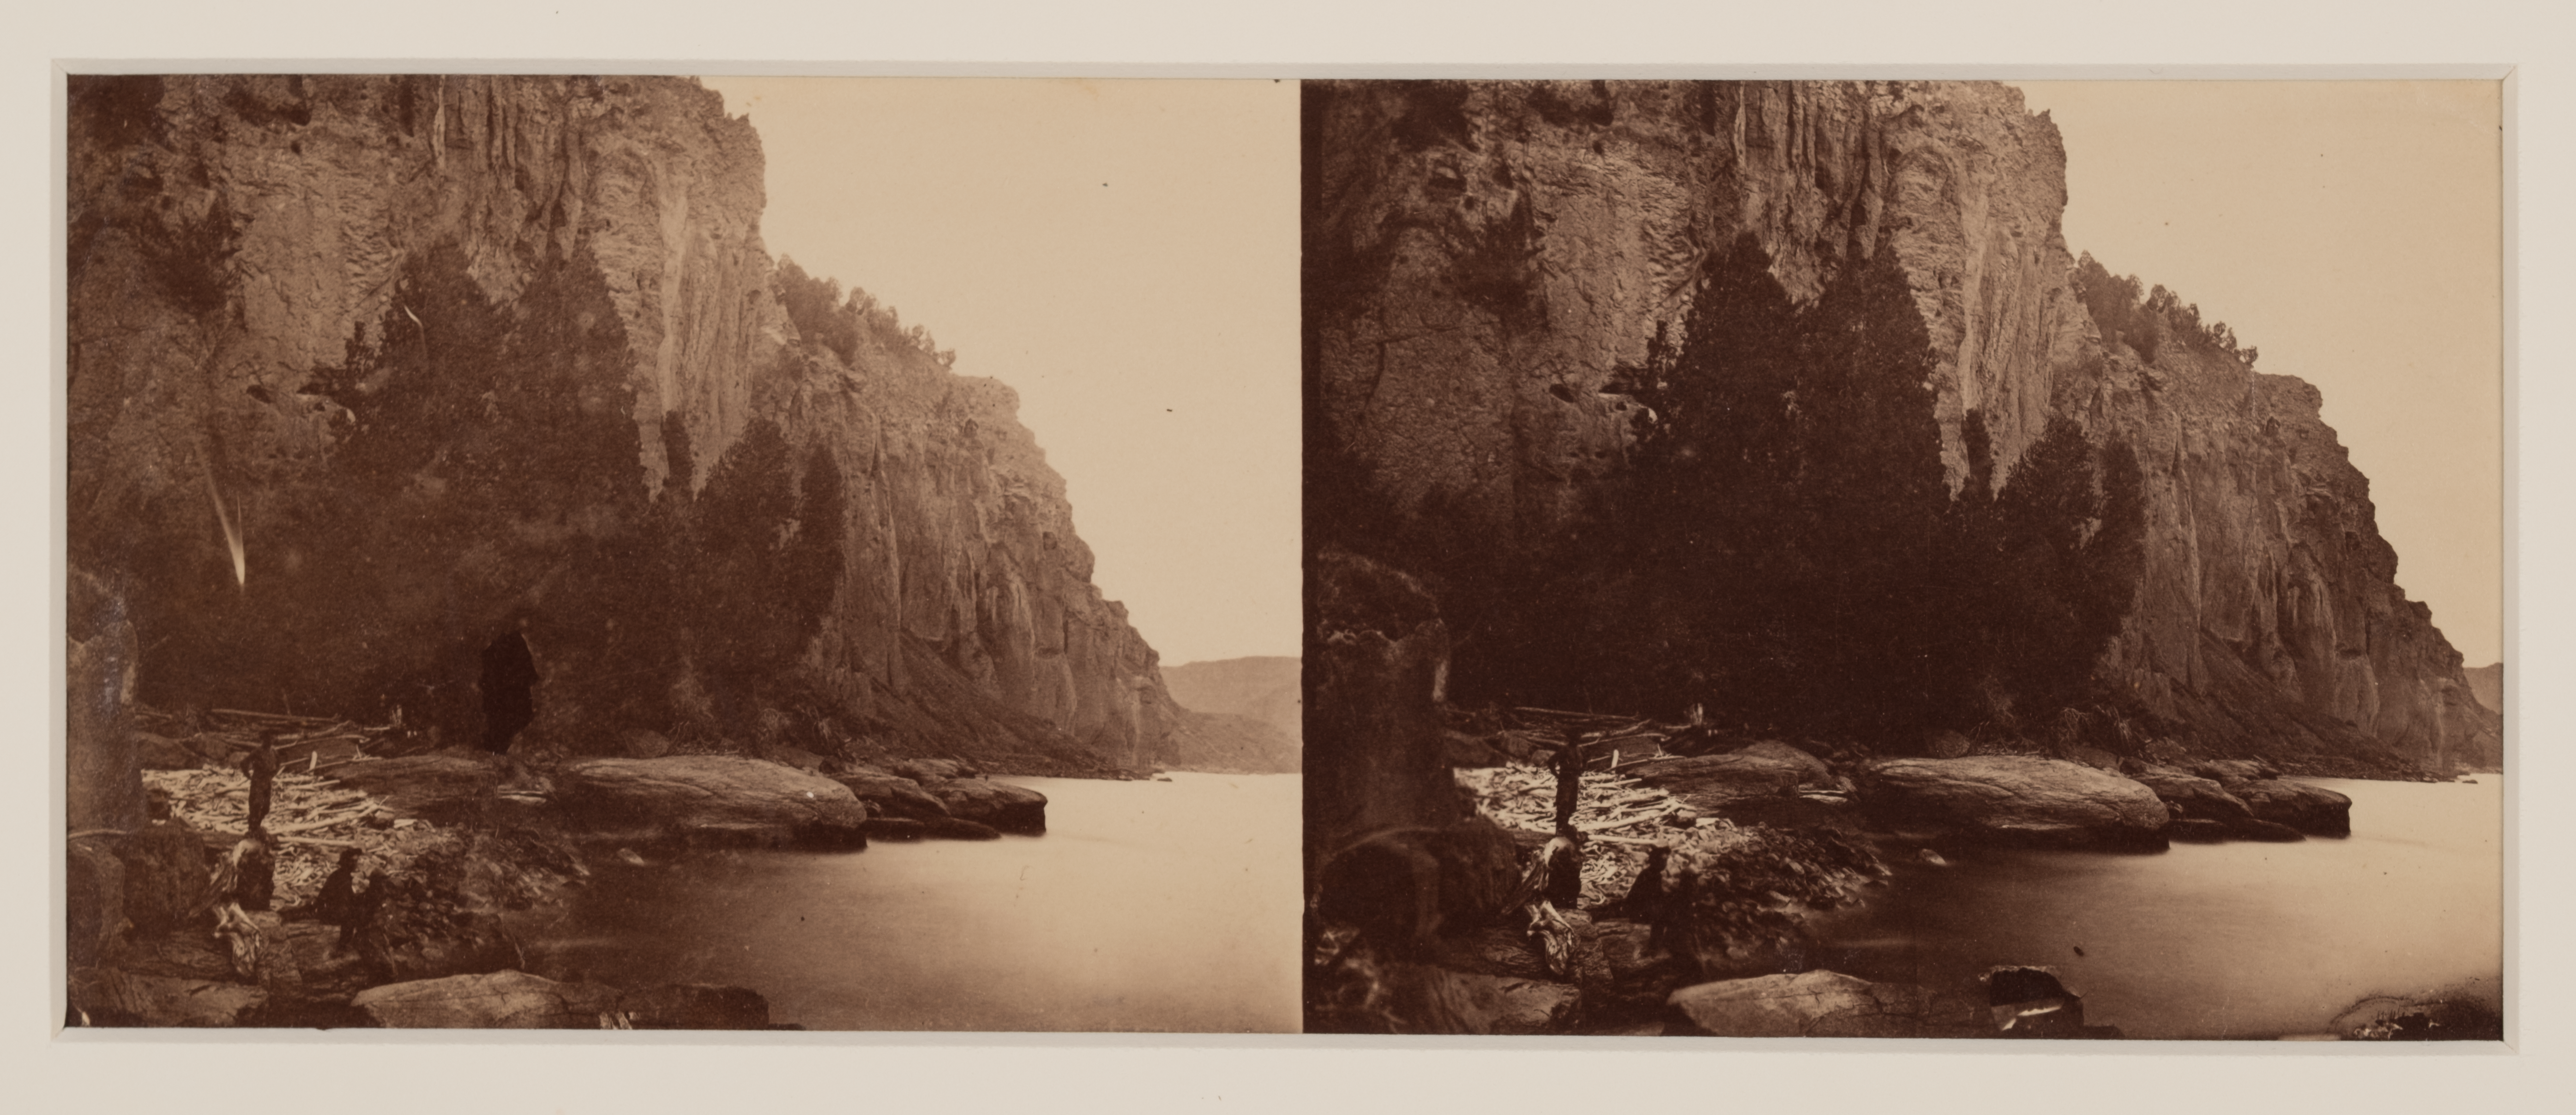 Side-by-side stereographs of a man near a river with cliffs and trees in the background